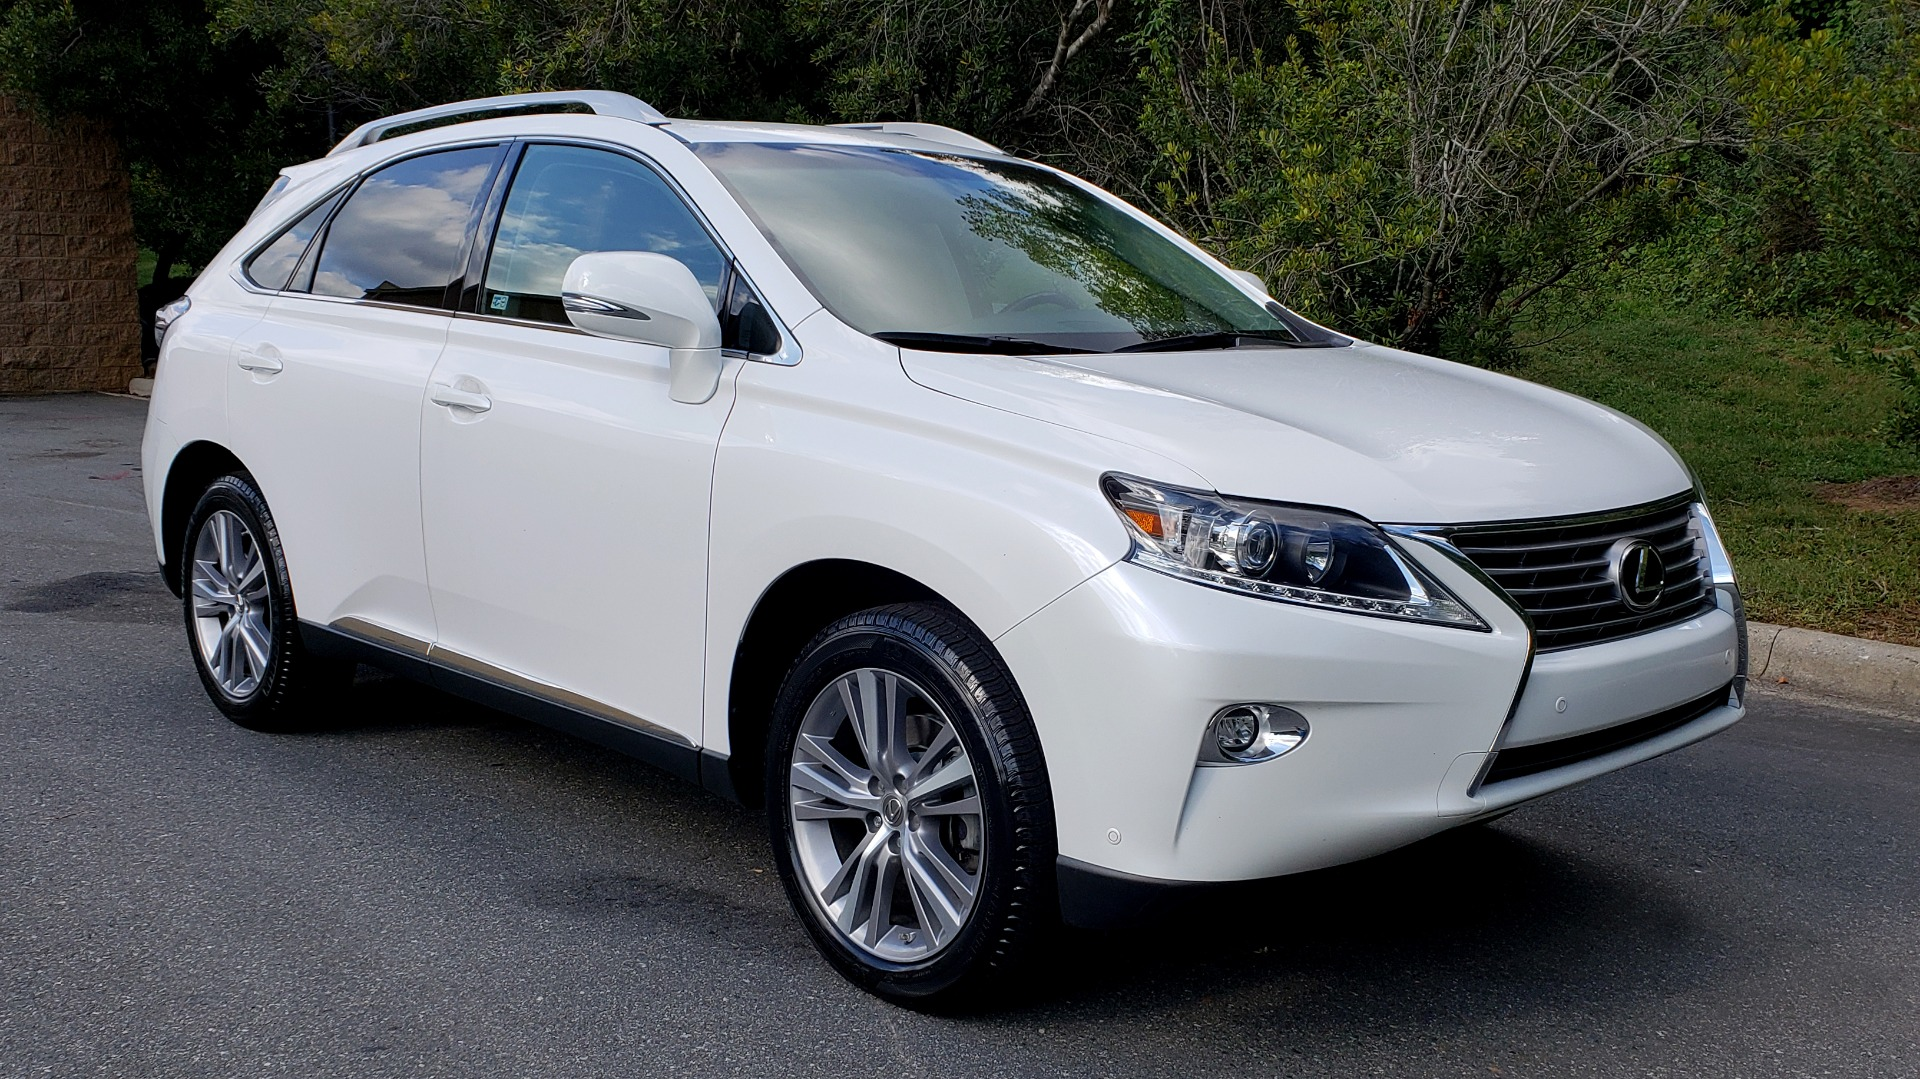 Used 2015 Lexus RX 350 PREMIUM PKG / COMFORT PKG / NAV / SUNROOF / BSM / TOWING for sale Sold at Formula Imports in Charlotte NC 28227 5